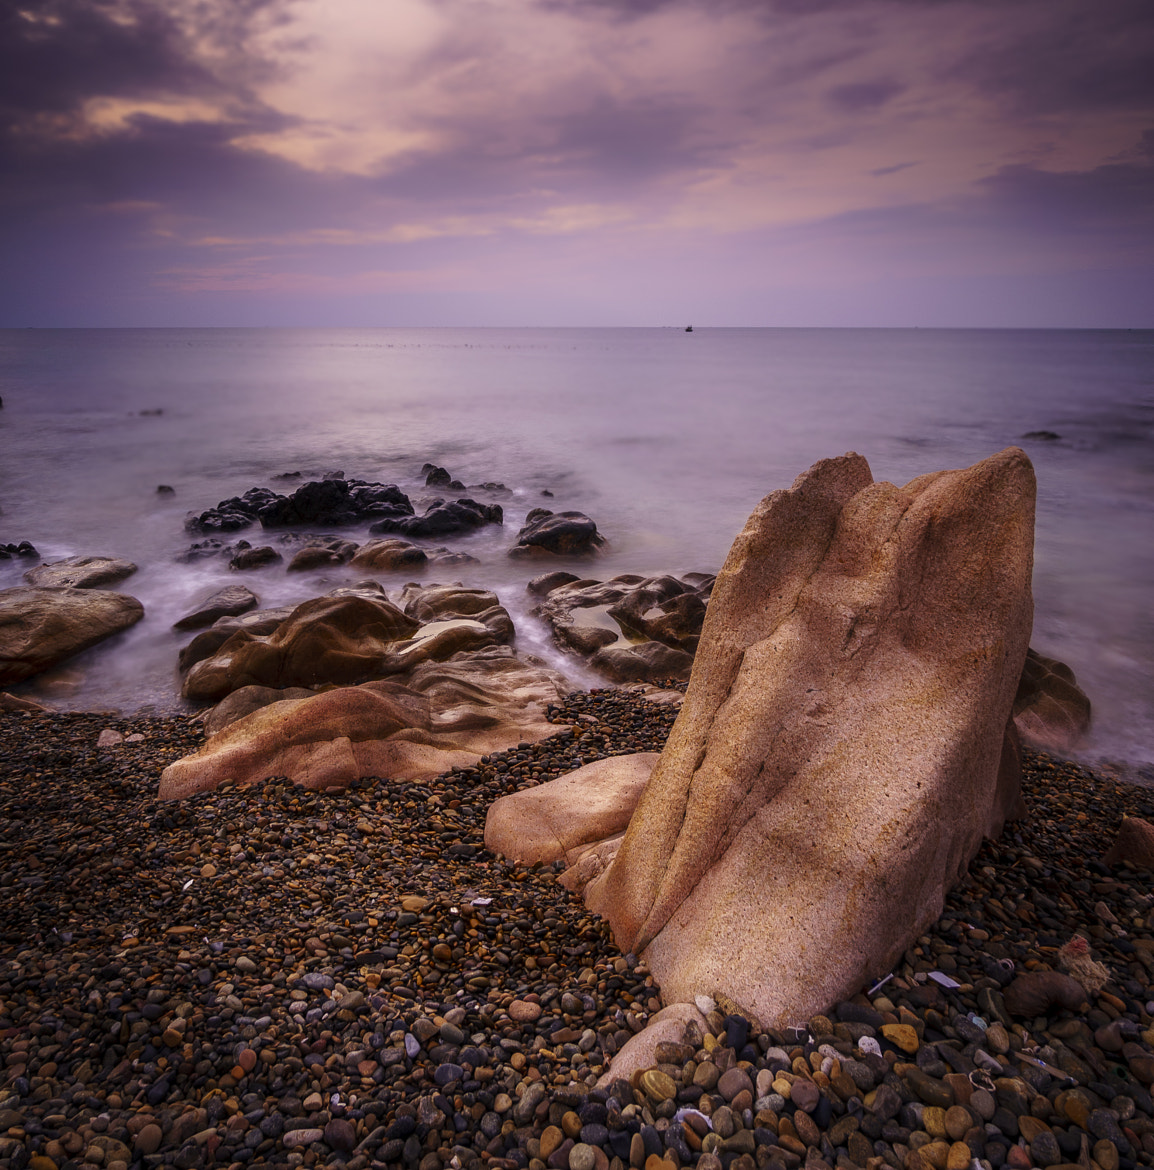 Photograph Co Thach beach 3 by Pham Ty on 500px